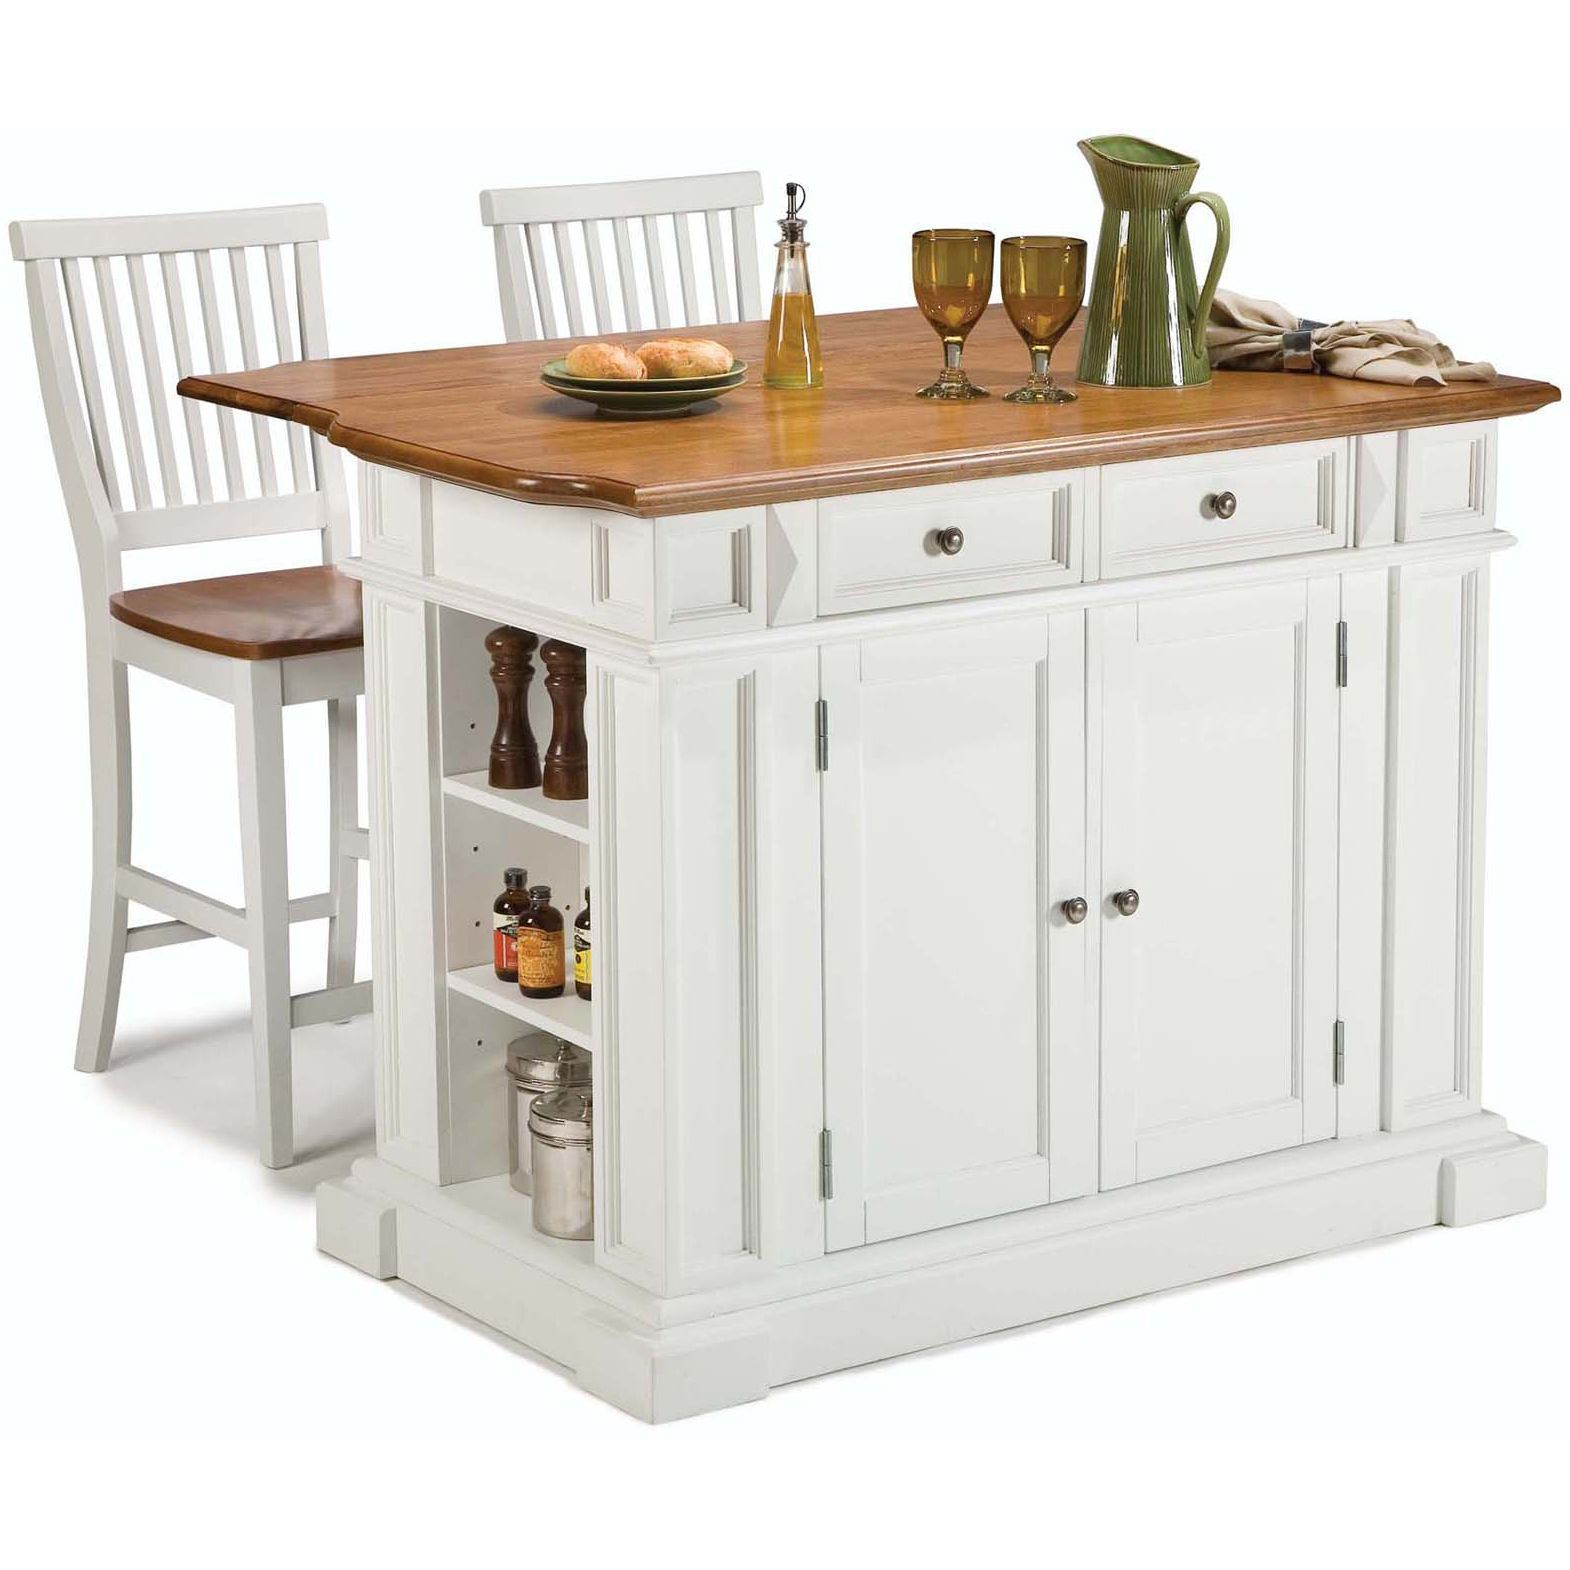 Home Styles Distressed Oak Kitchen Island and Bar Stools | Remodel ...